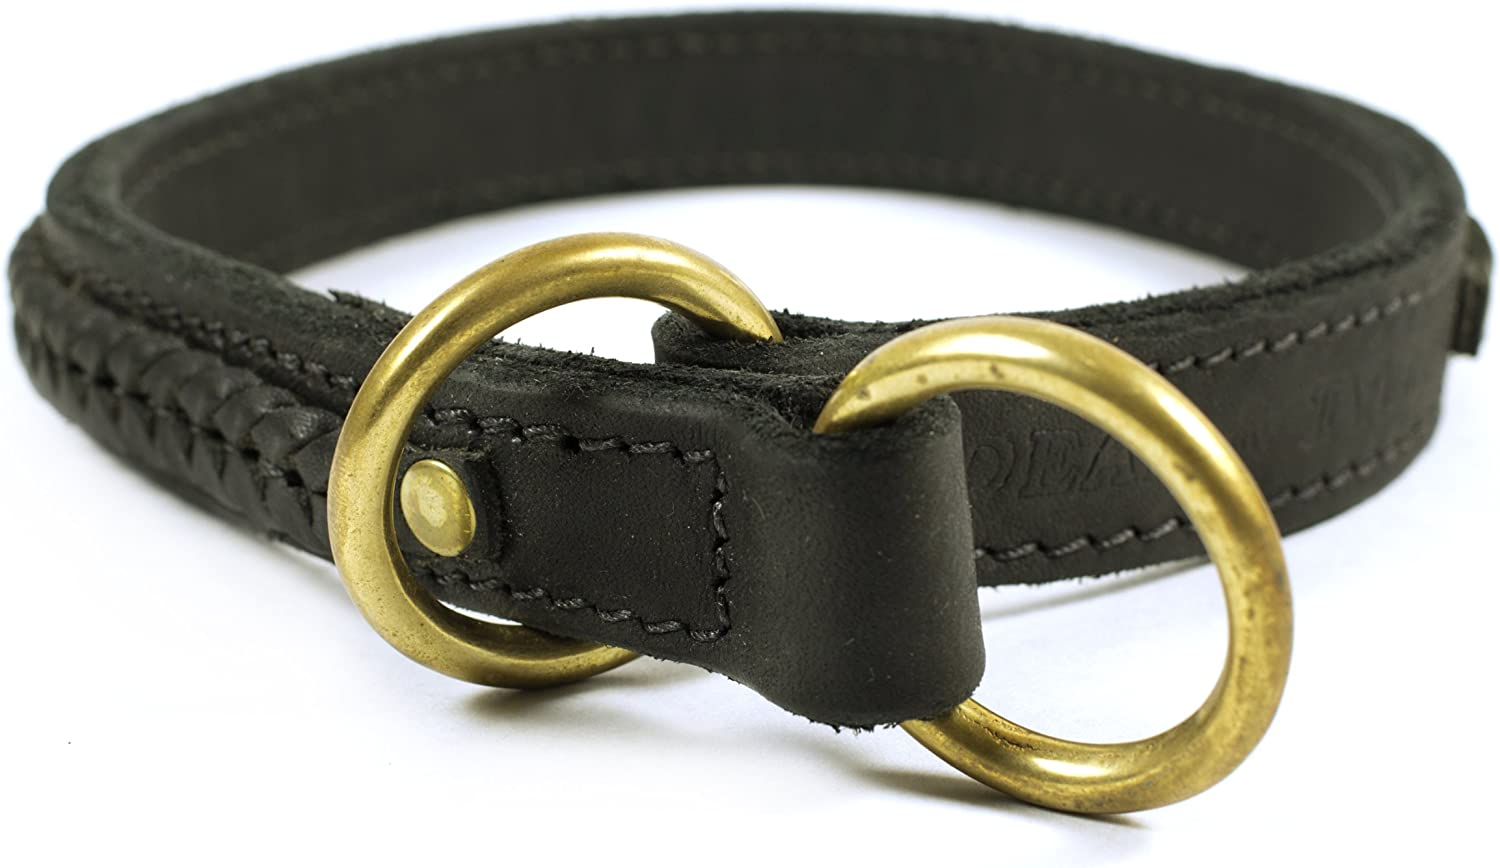 Dean and Tyler CLASSY KIER , Dog Choke Collar with Braided Design and Brass Hardware  Black  Size 20Inch by 1Inch  Fits Neck 18Inch to 20Inch